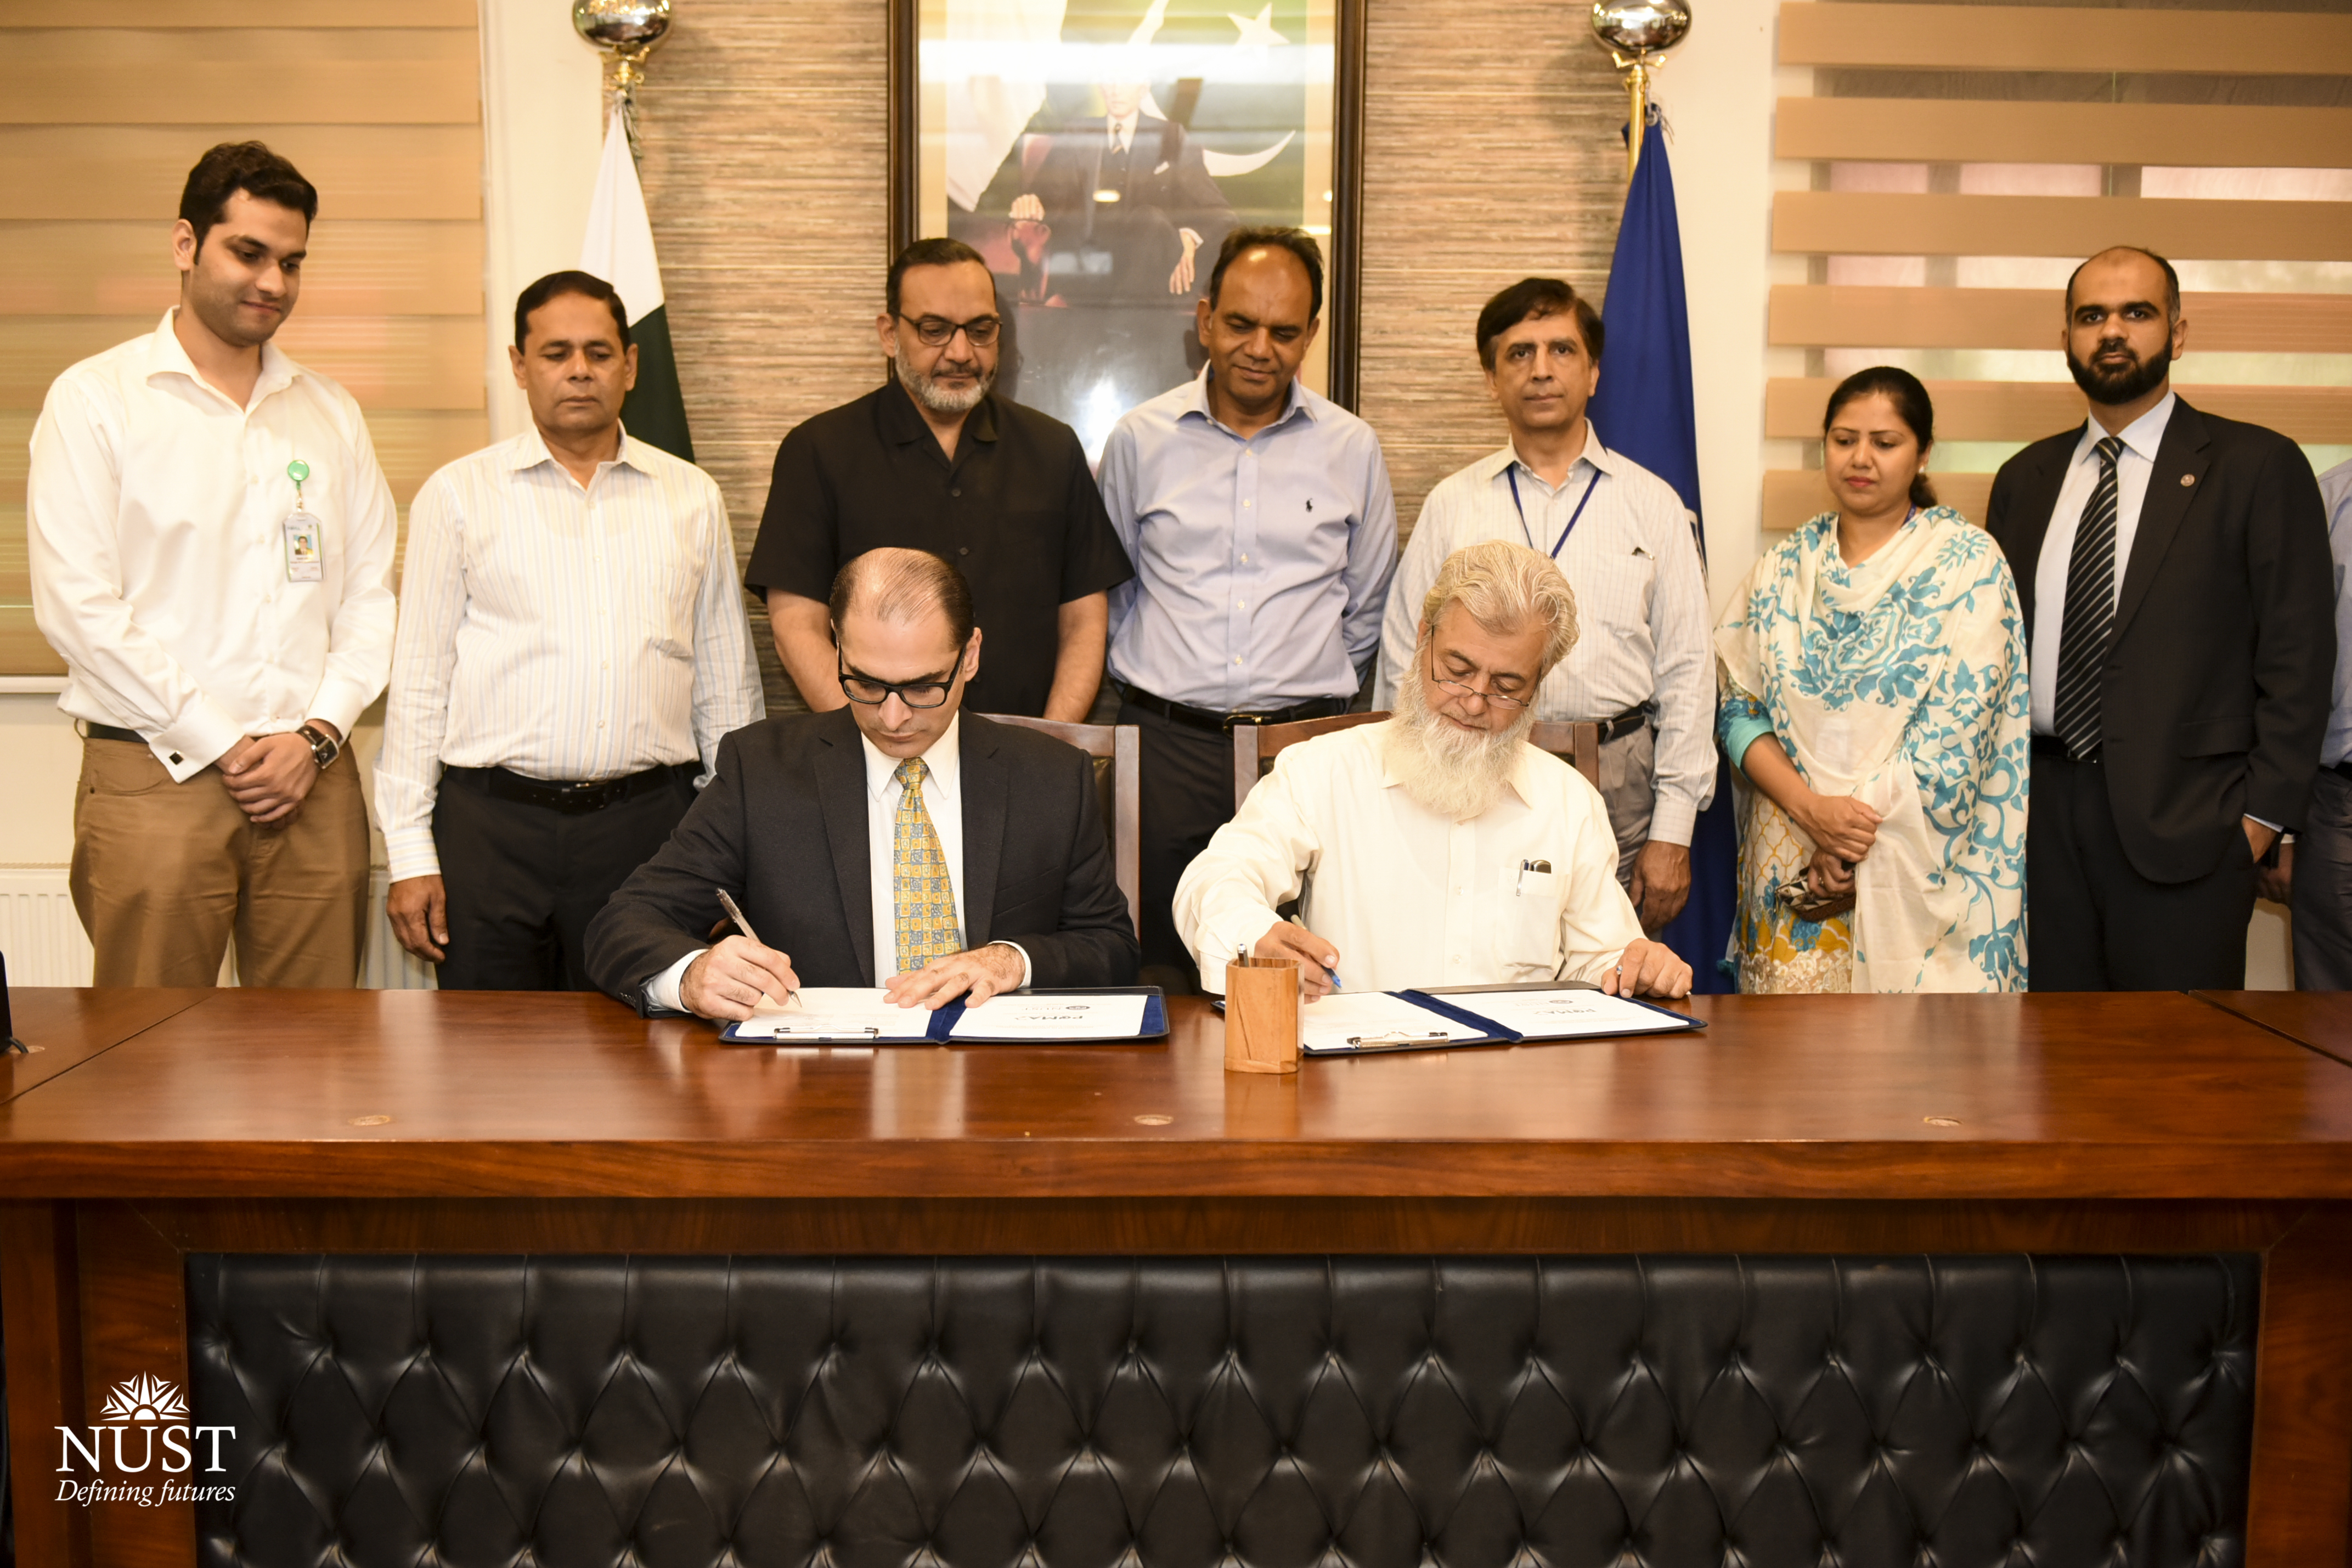 MoU signing ceremony took place on Aug 1, 2018, at